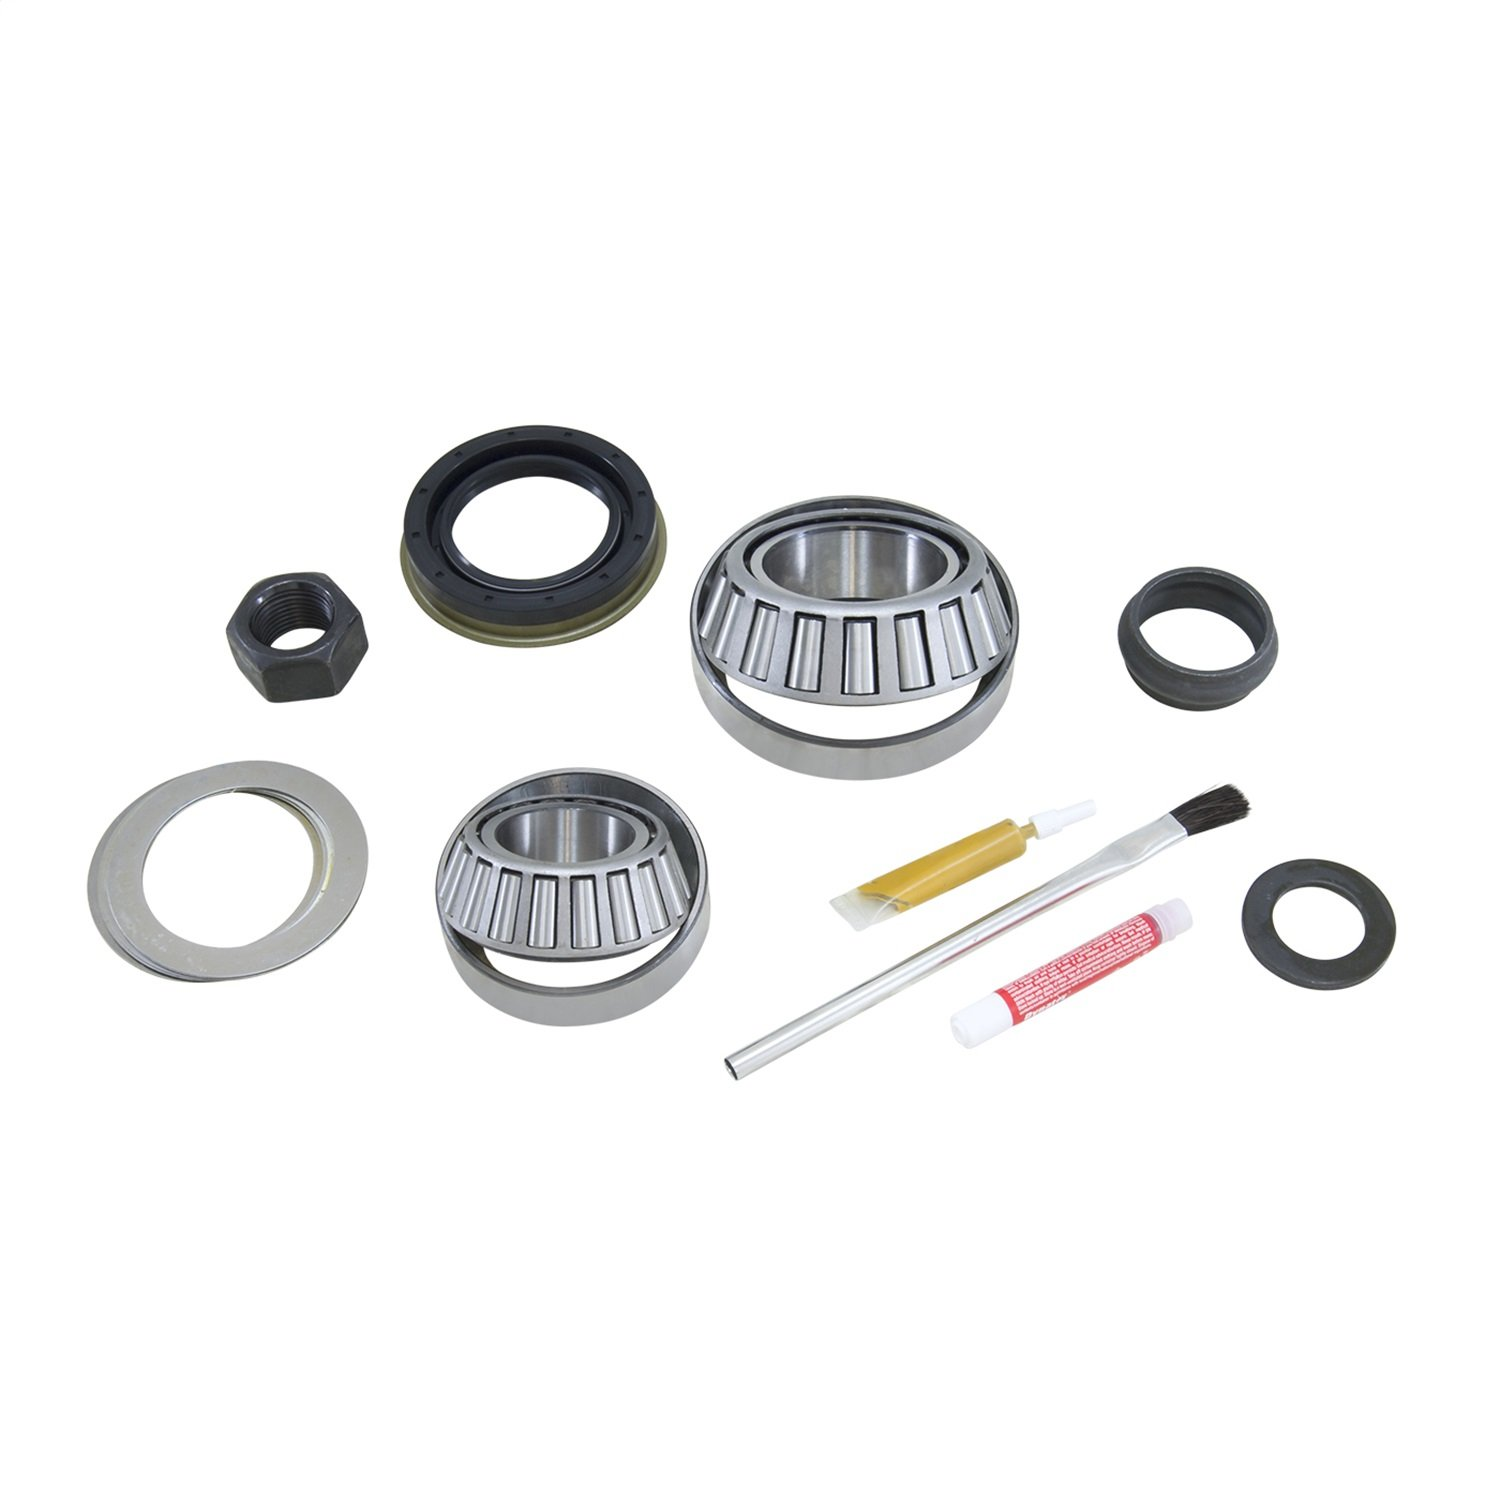 Yukon Gear & Axle (PK D44-JK-STD) Pinion Installation Kit for Jeep JK Non-Rubicon Dana 44 Rear Differential